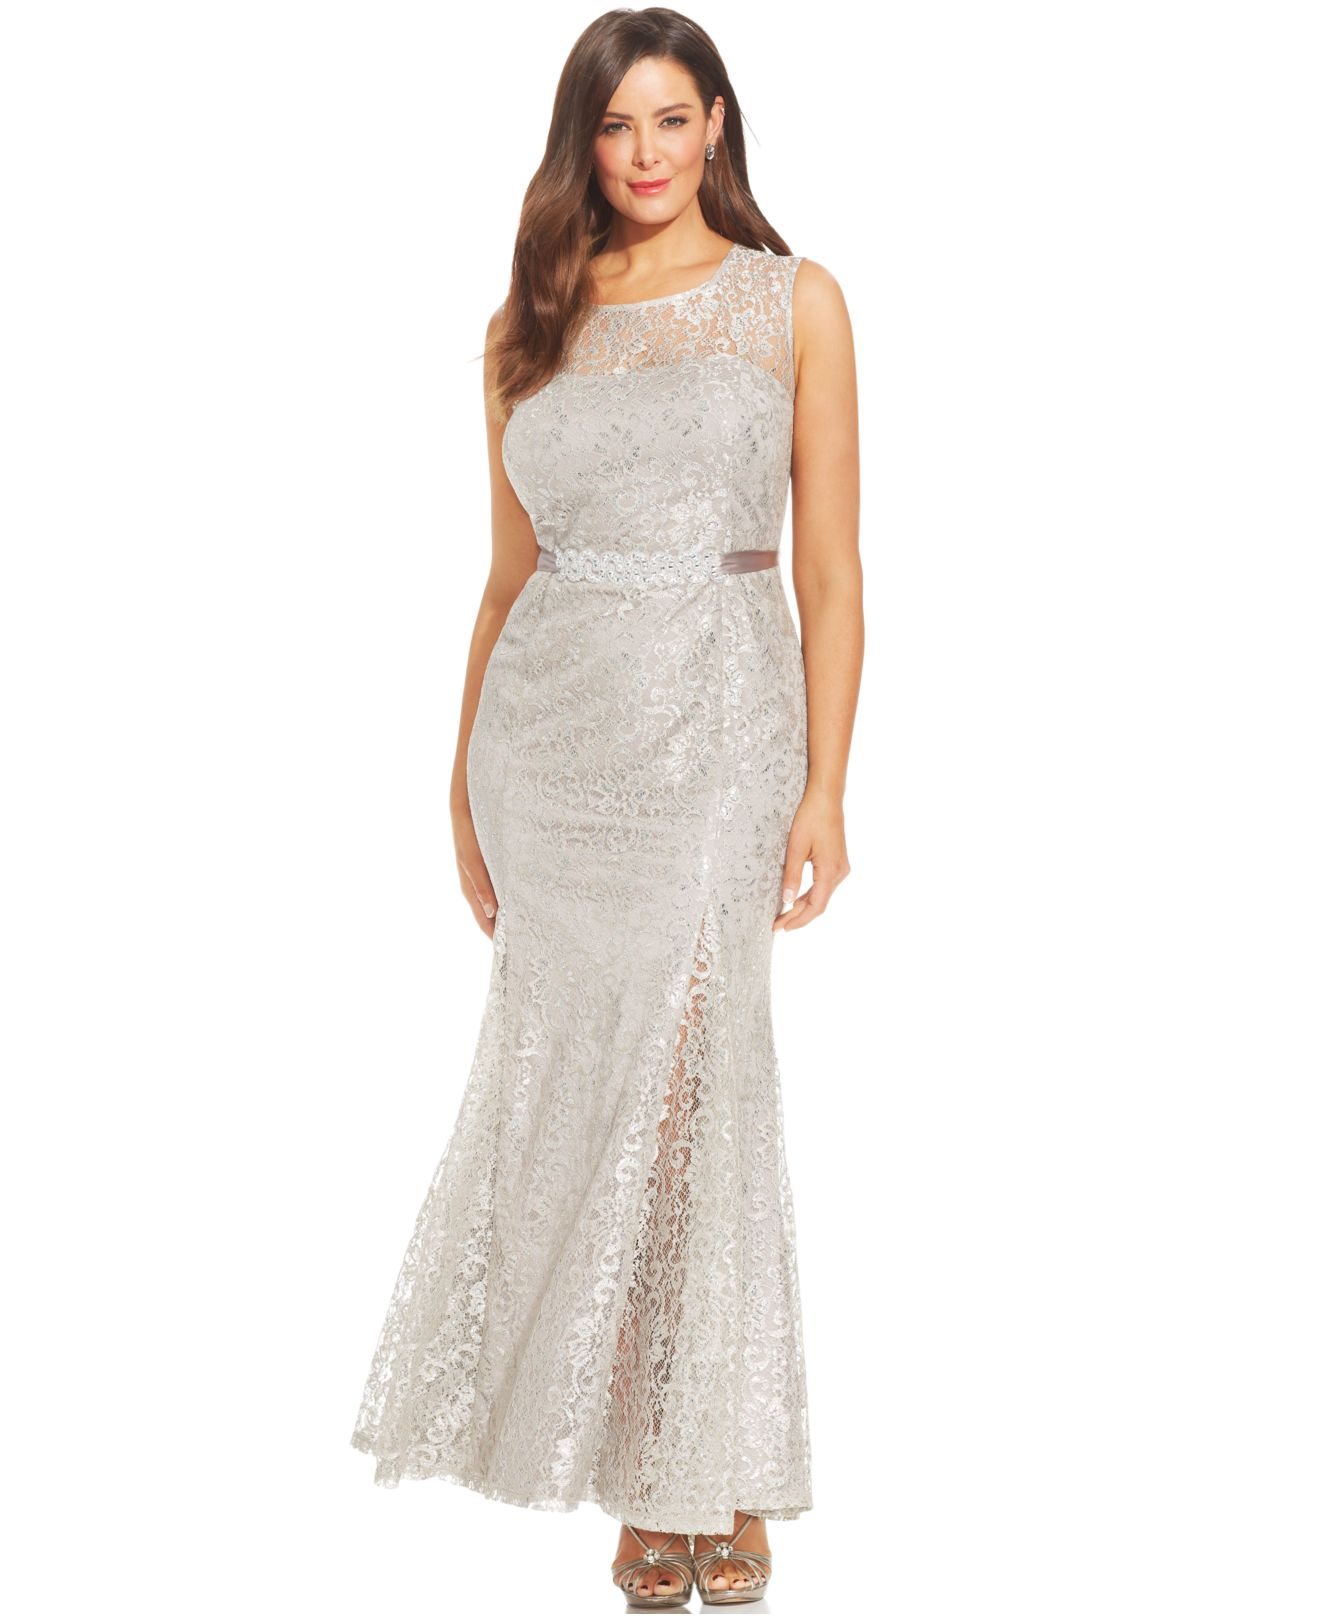 Lyst - Betsy & Adam Plus Size Metallic Lace Pleated Gown in Metallic